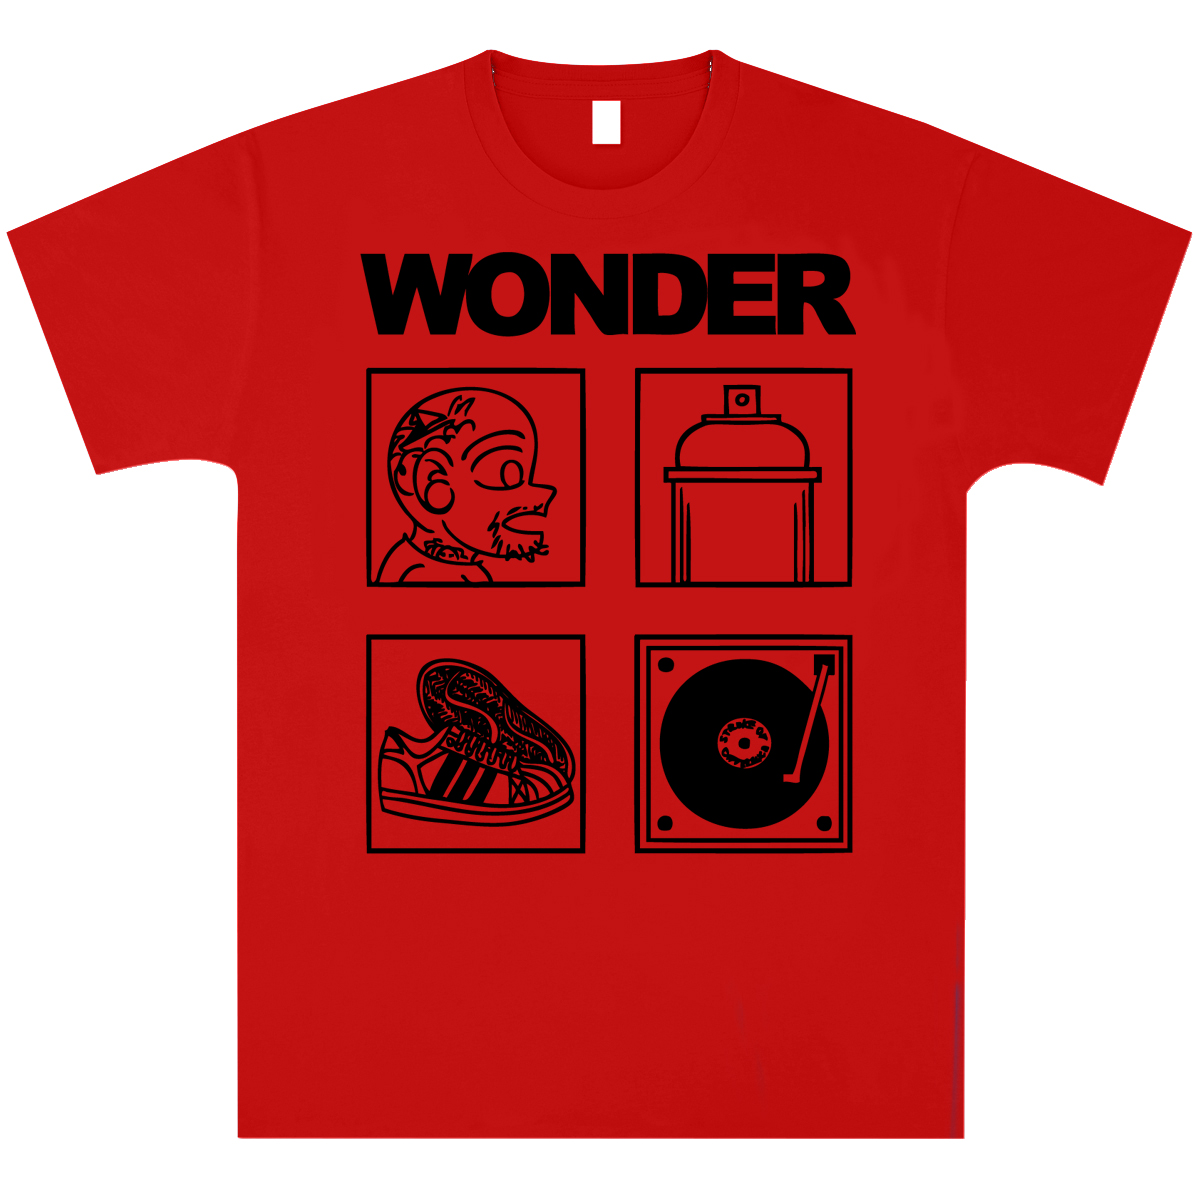 Shirtdesign1red_original